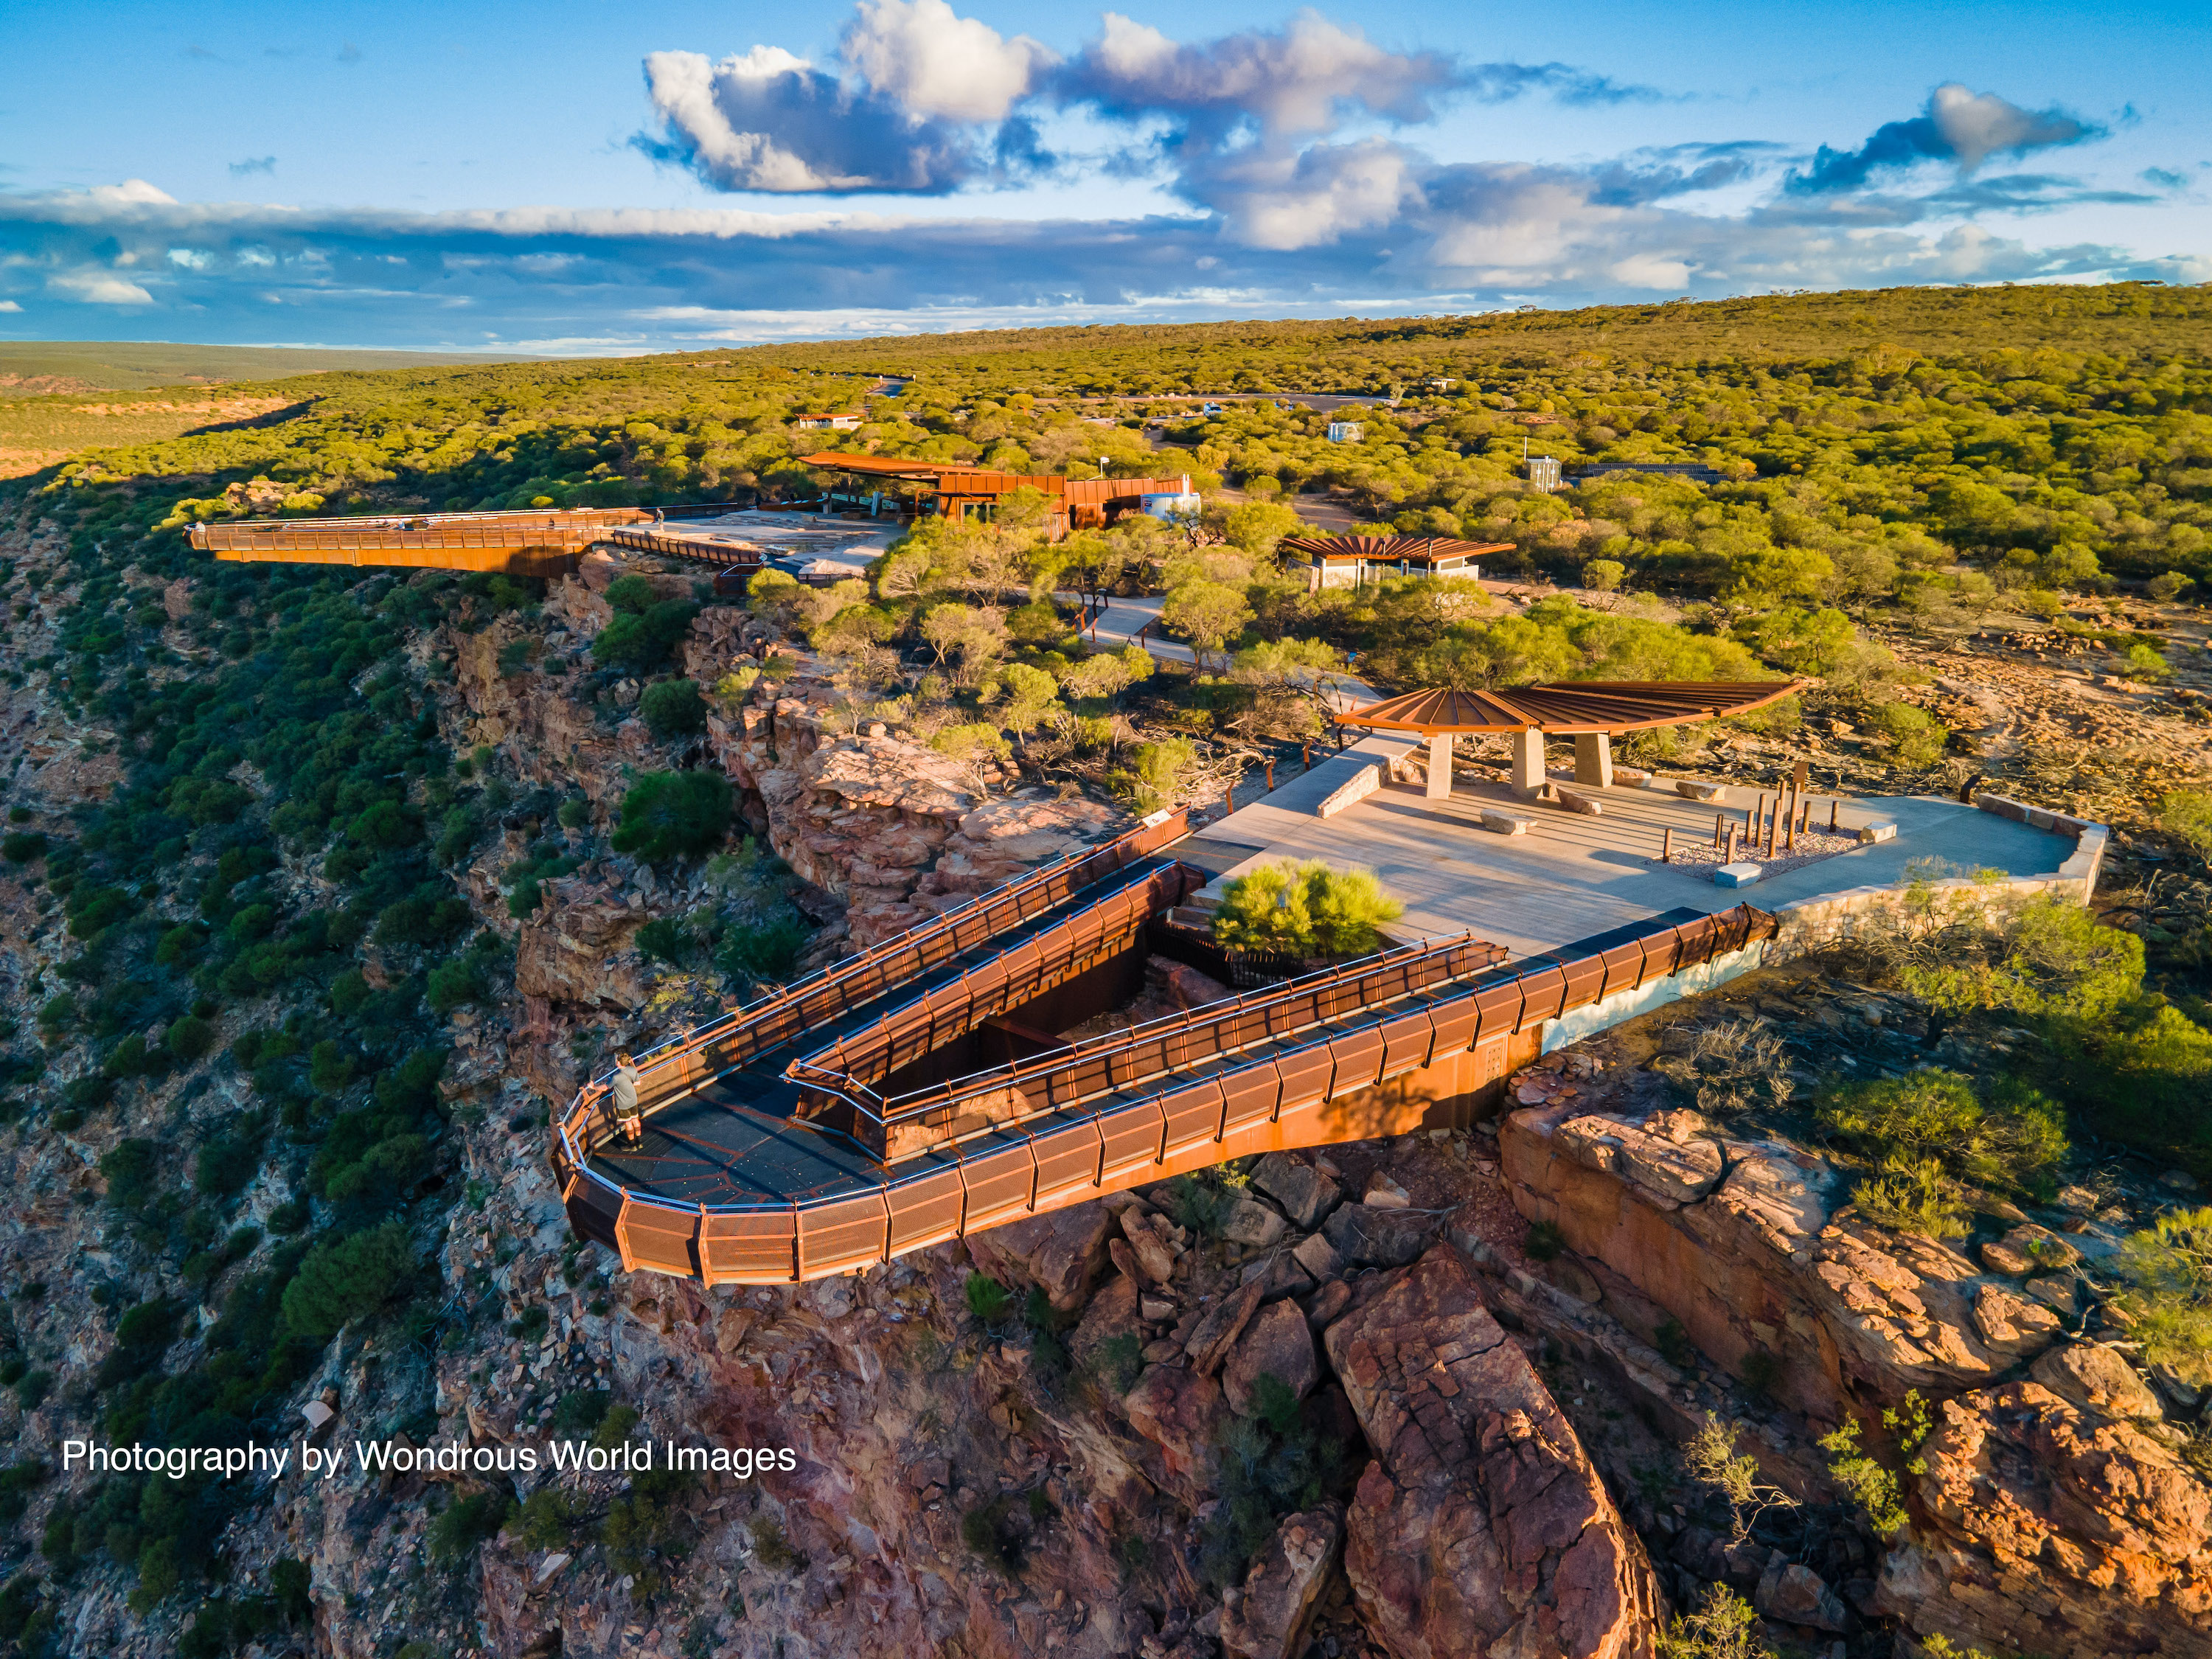 Kalbarri Skywalk and the Murchison cliffs from above